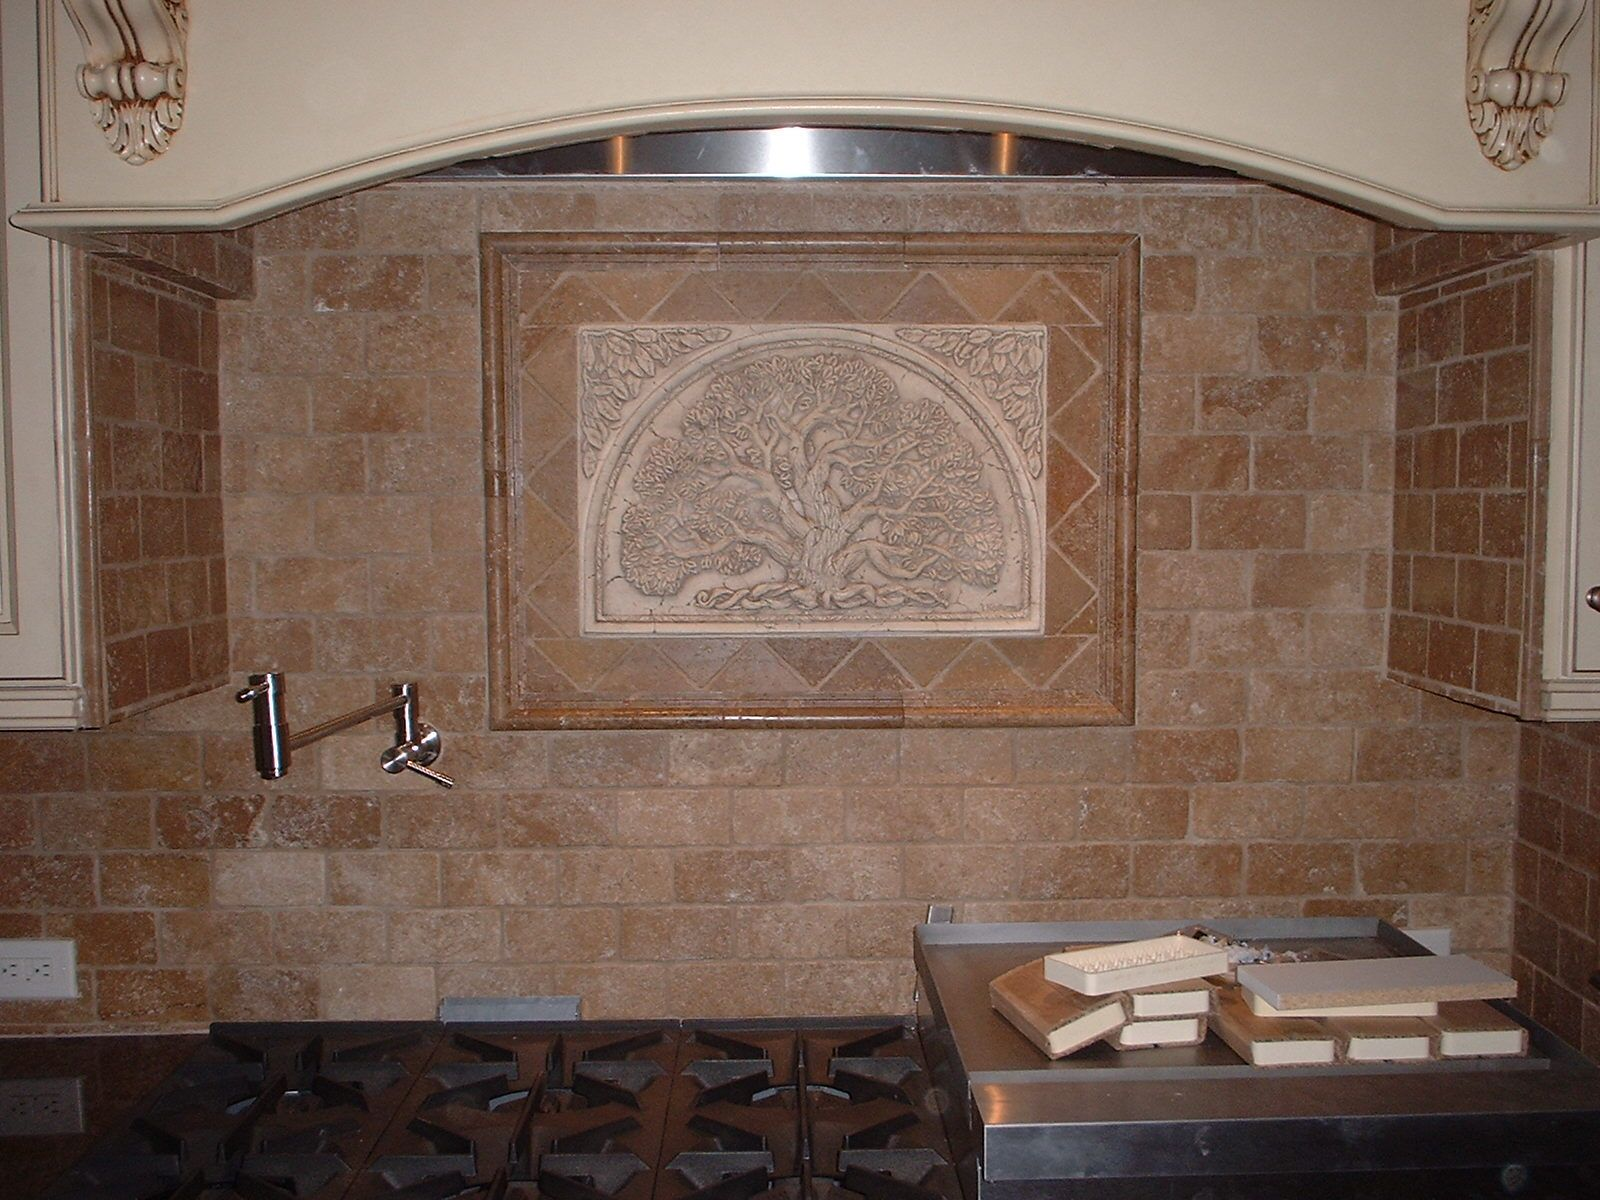 Kitchen Tile Backsplash Design Ideas pillow top tile backsplash design ideas 1000 Images About Decorative Backsplash Over Cooktop On Pinterest Decorative Tile Kitchen Backsplash And Kitchen Backsplash Tile